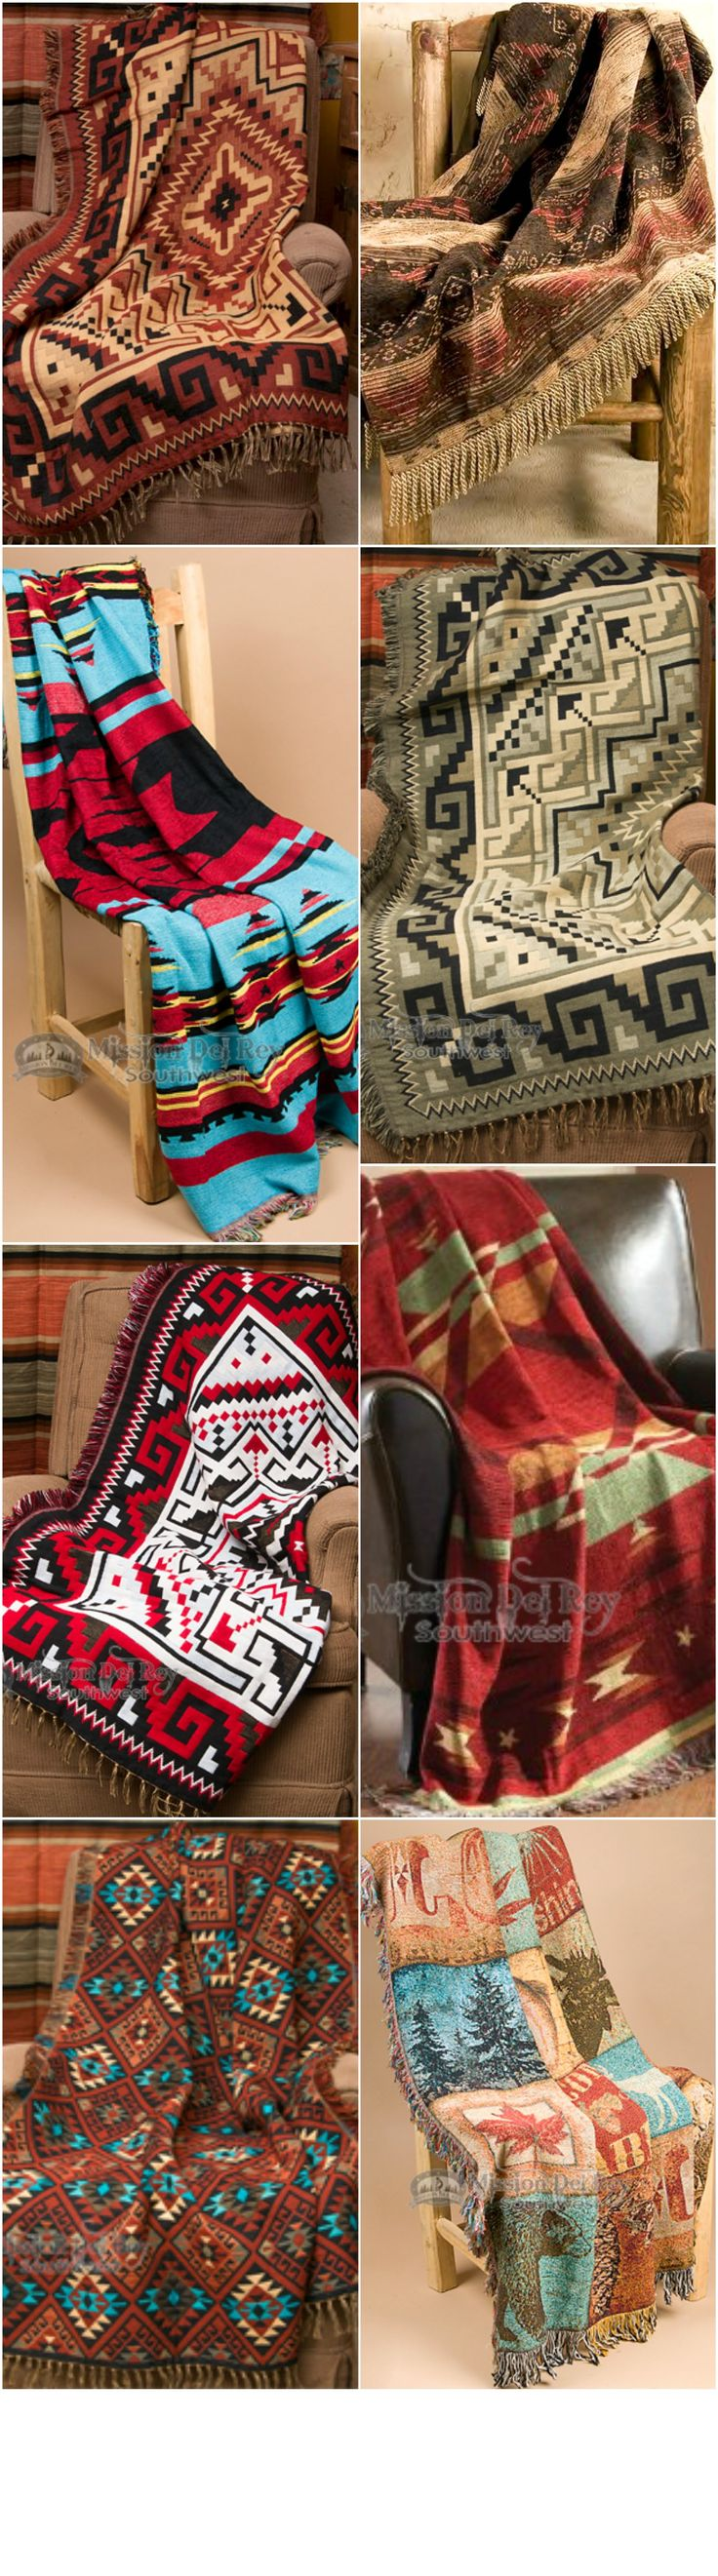 Use our southwestern throws this fall to create a cozy and inviting home.  See our entire collection of southwestern throws at http://www.missiondelrey.com/southwestern-throws/